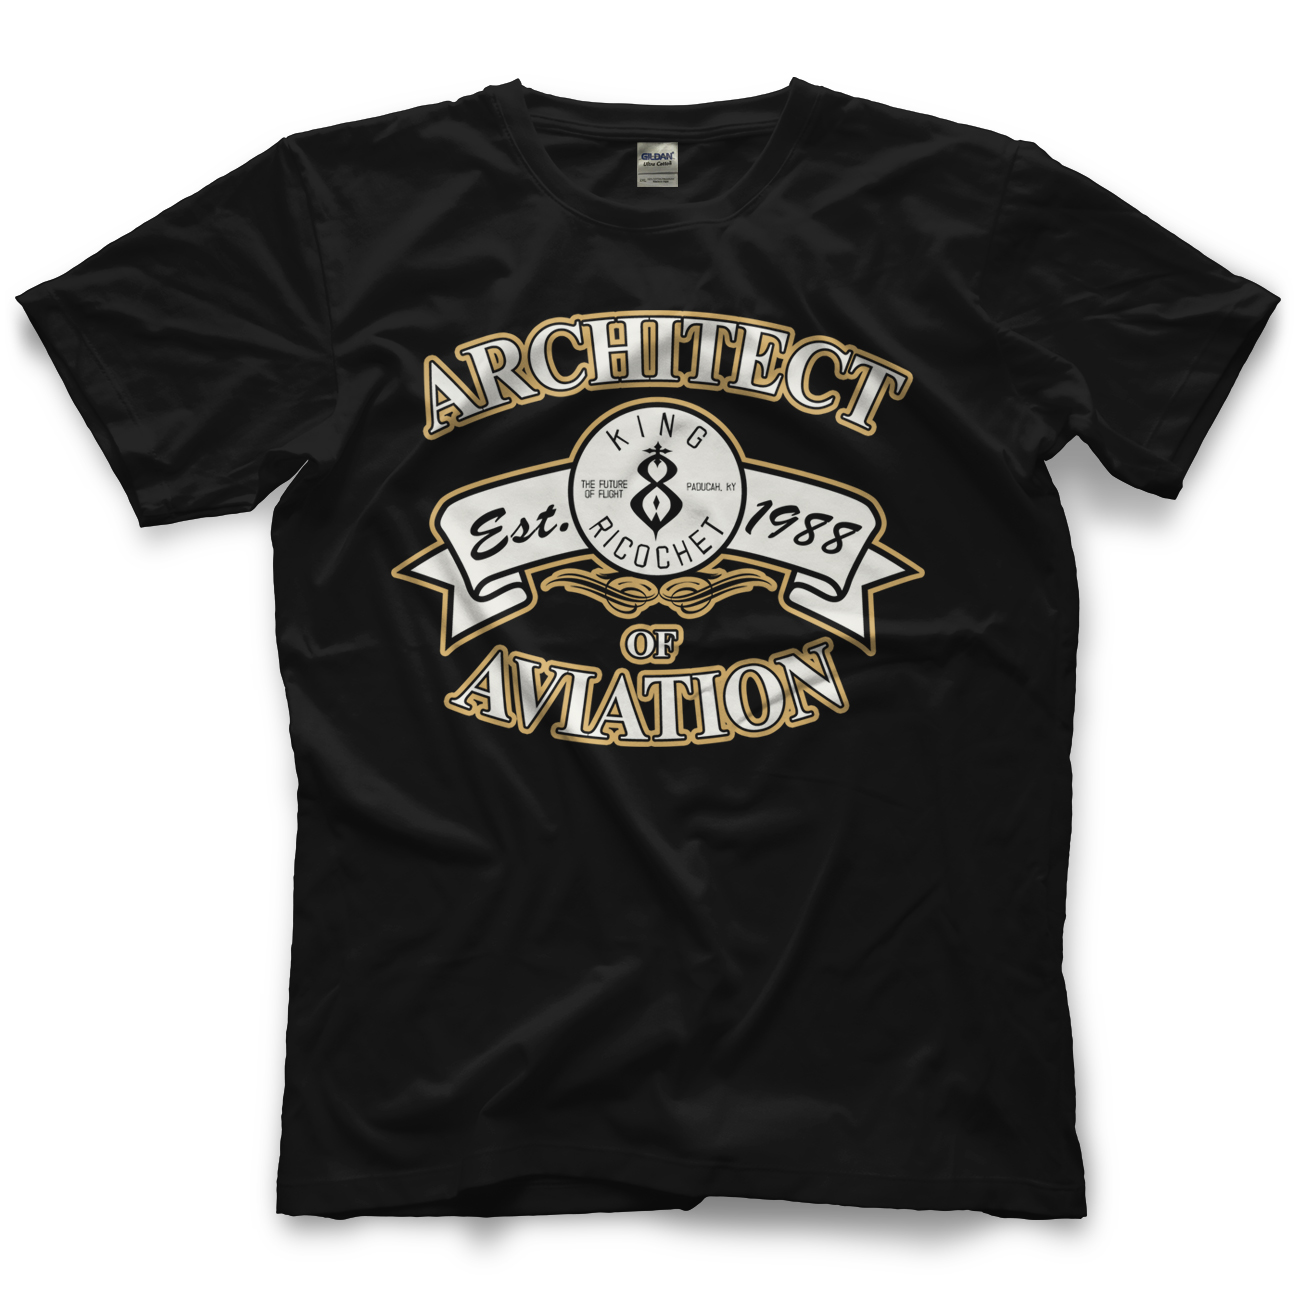 Ricochet Architect 2 T-shirt